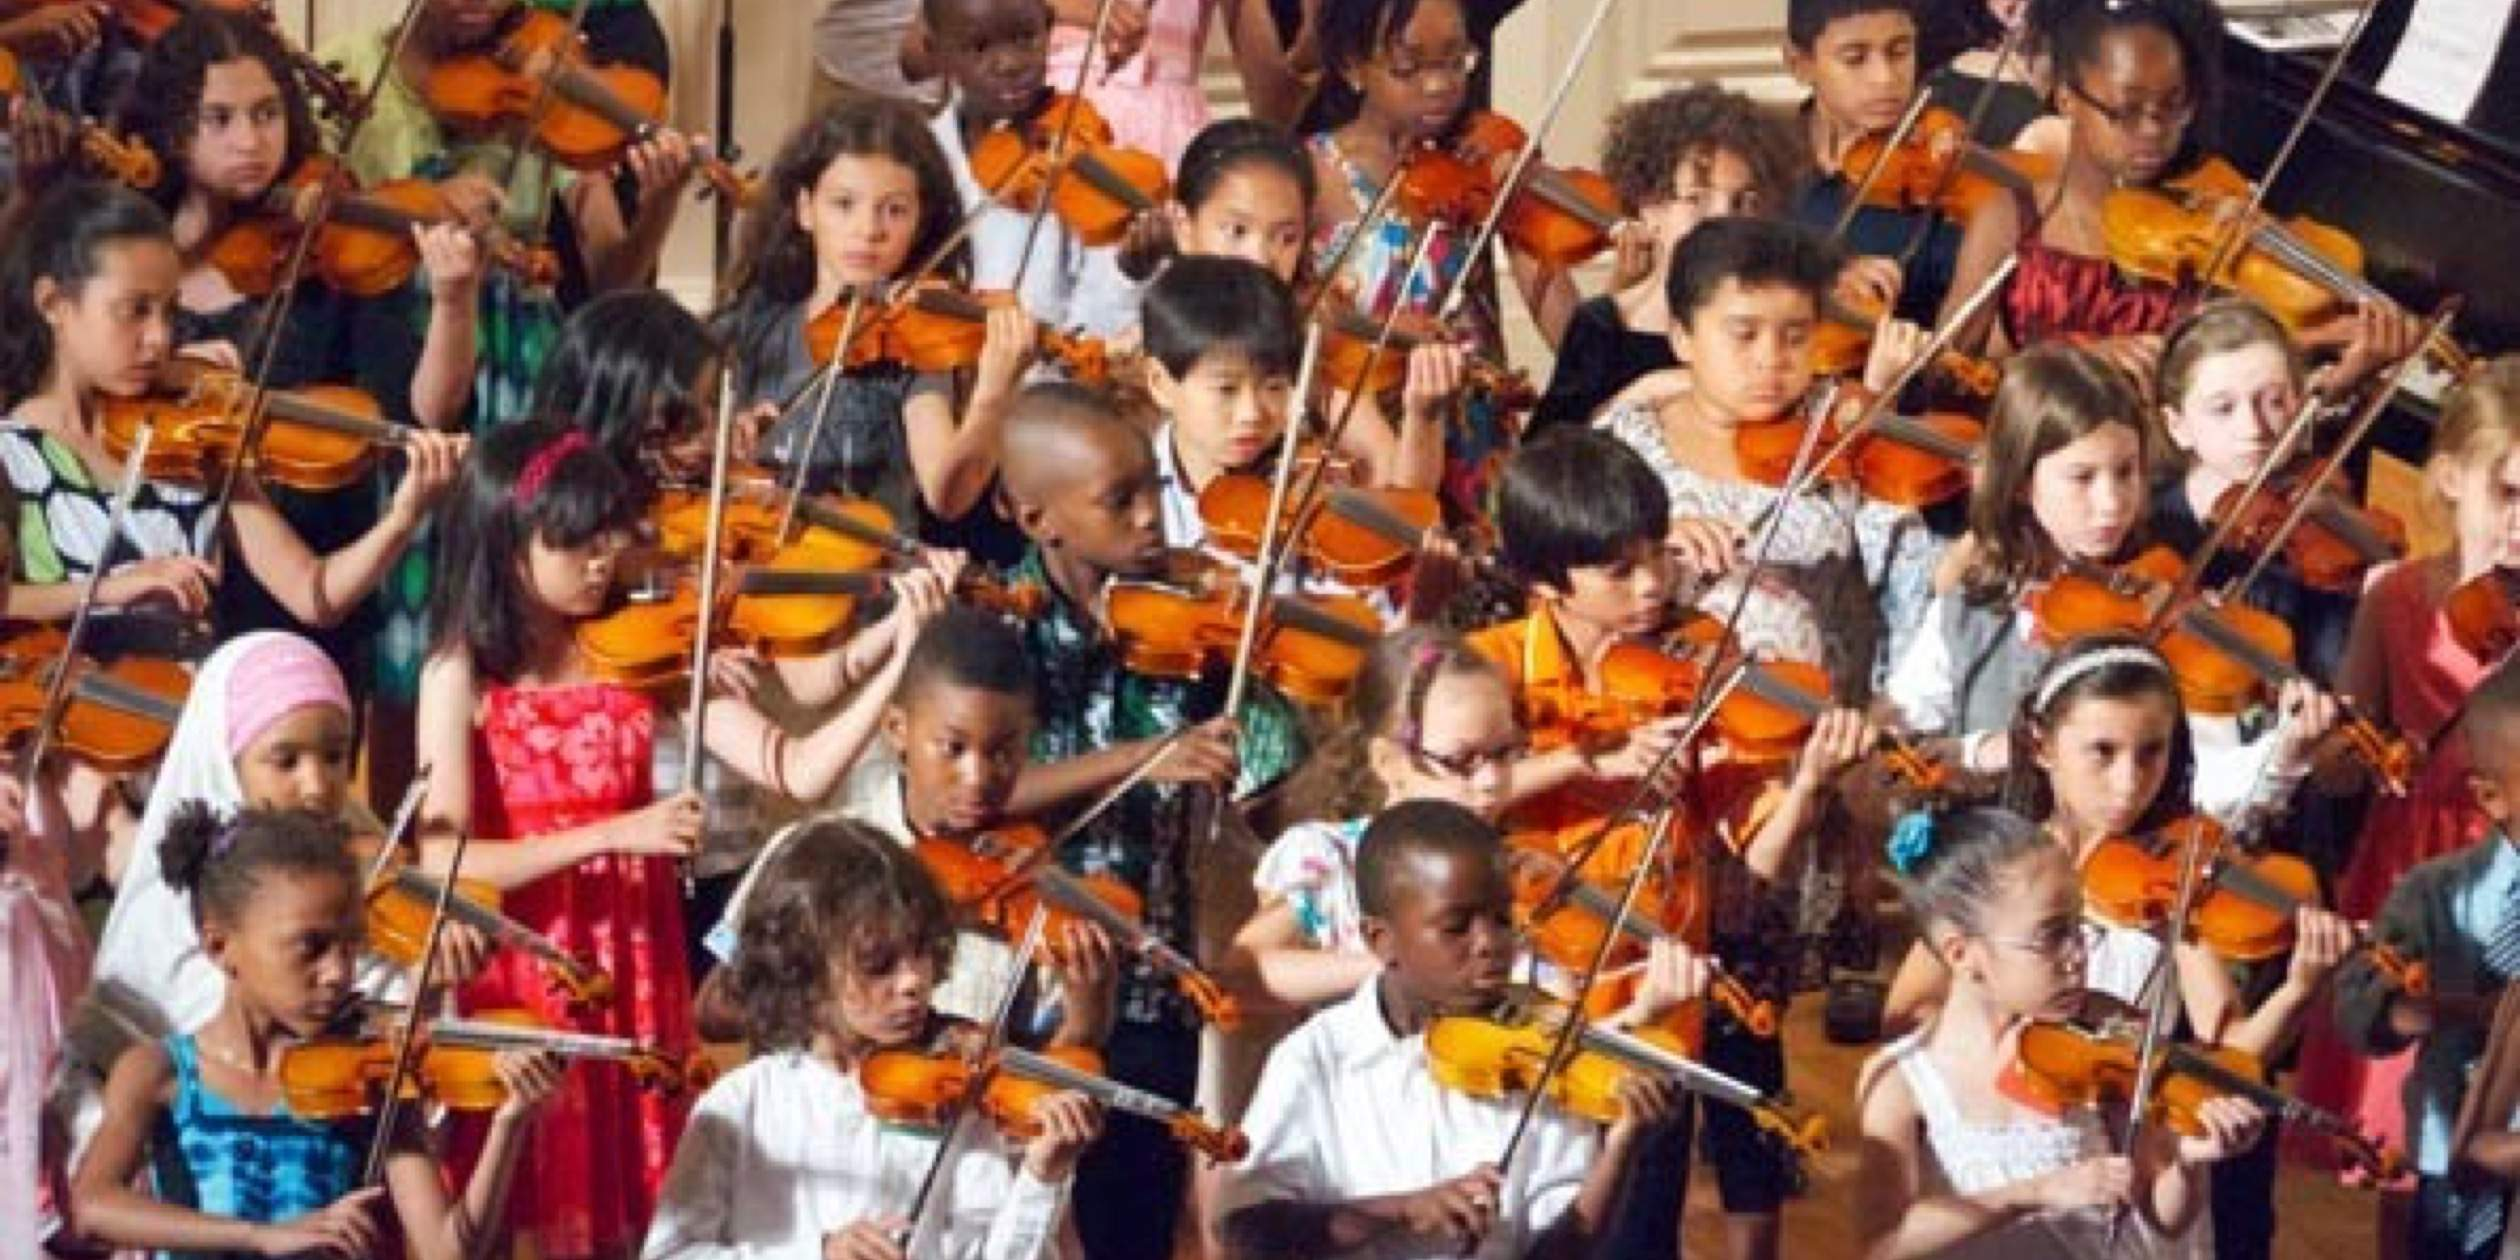 New Partnership with Opus 118 Benefits East Harlem Children